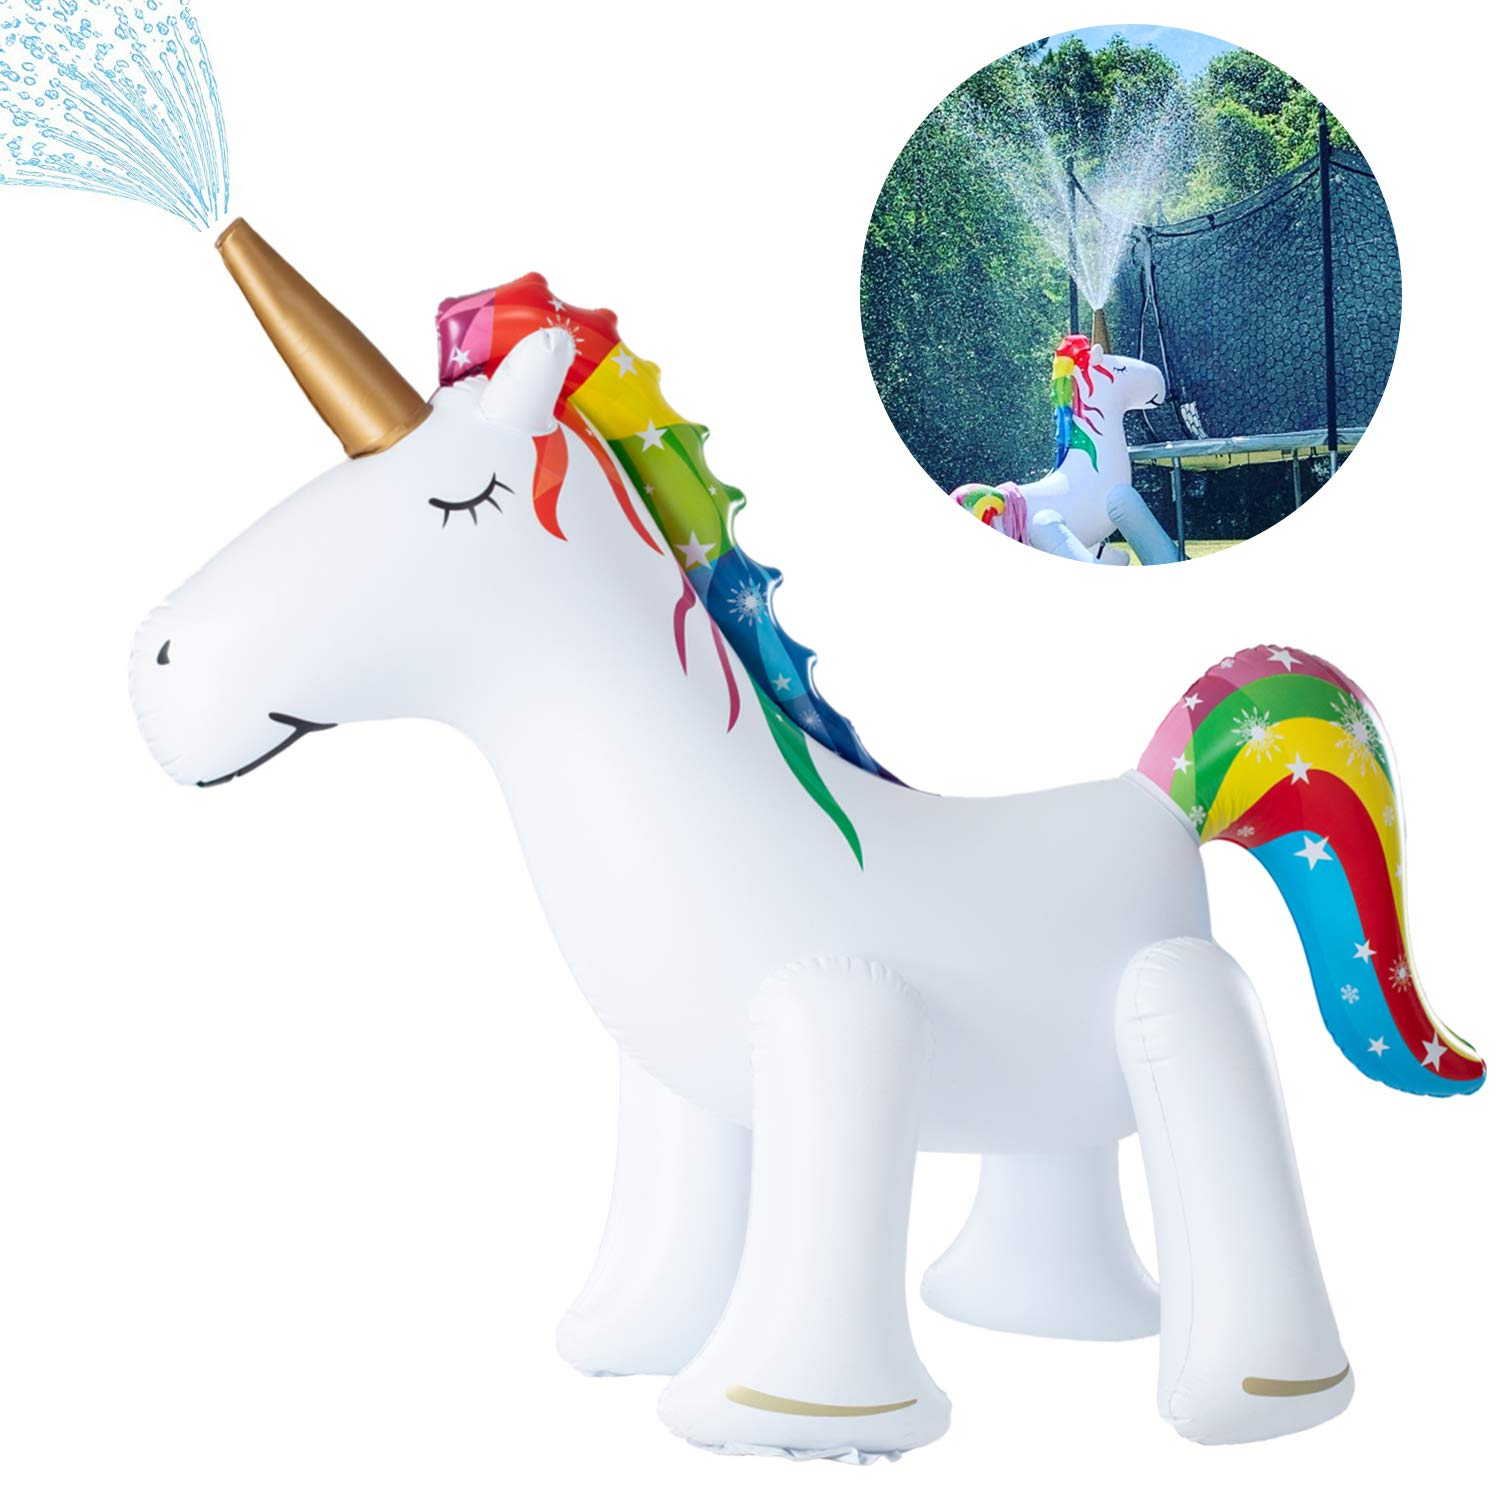 XGEAR Large Inflatable Unicorn Yard Sprinklers, Outdoor Sprinkle and Splash Play,Lawn Sprinkler, Summer Inflatable Water Spray Toy ,Fun Play Games for Kid Child Adult by XGEAR